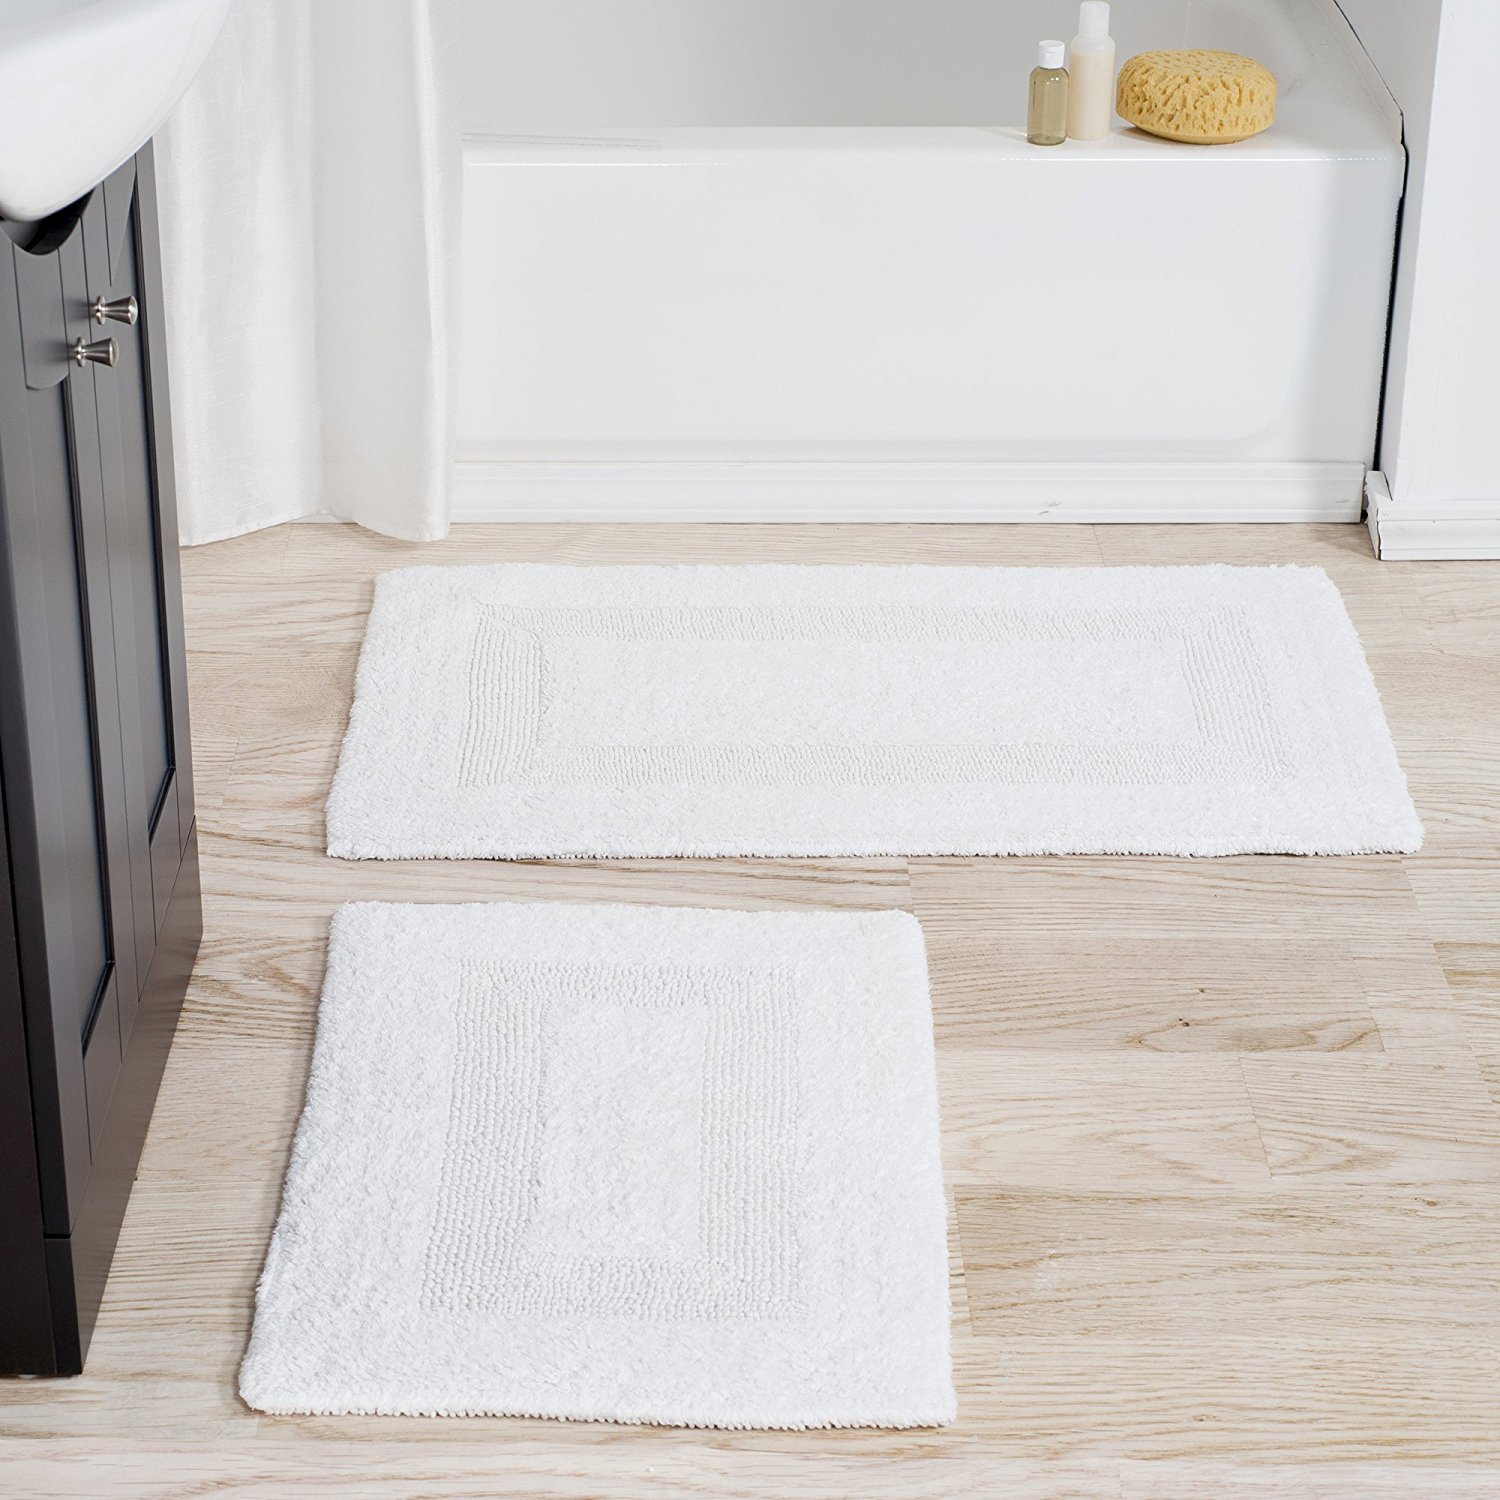 100% Cotton 2 Piece Reversible Rug Set - White, 100% Cotton By Bedford Home From USA